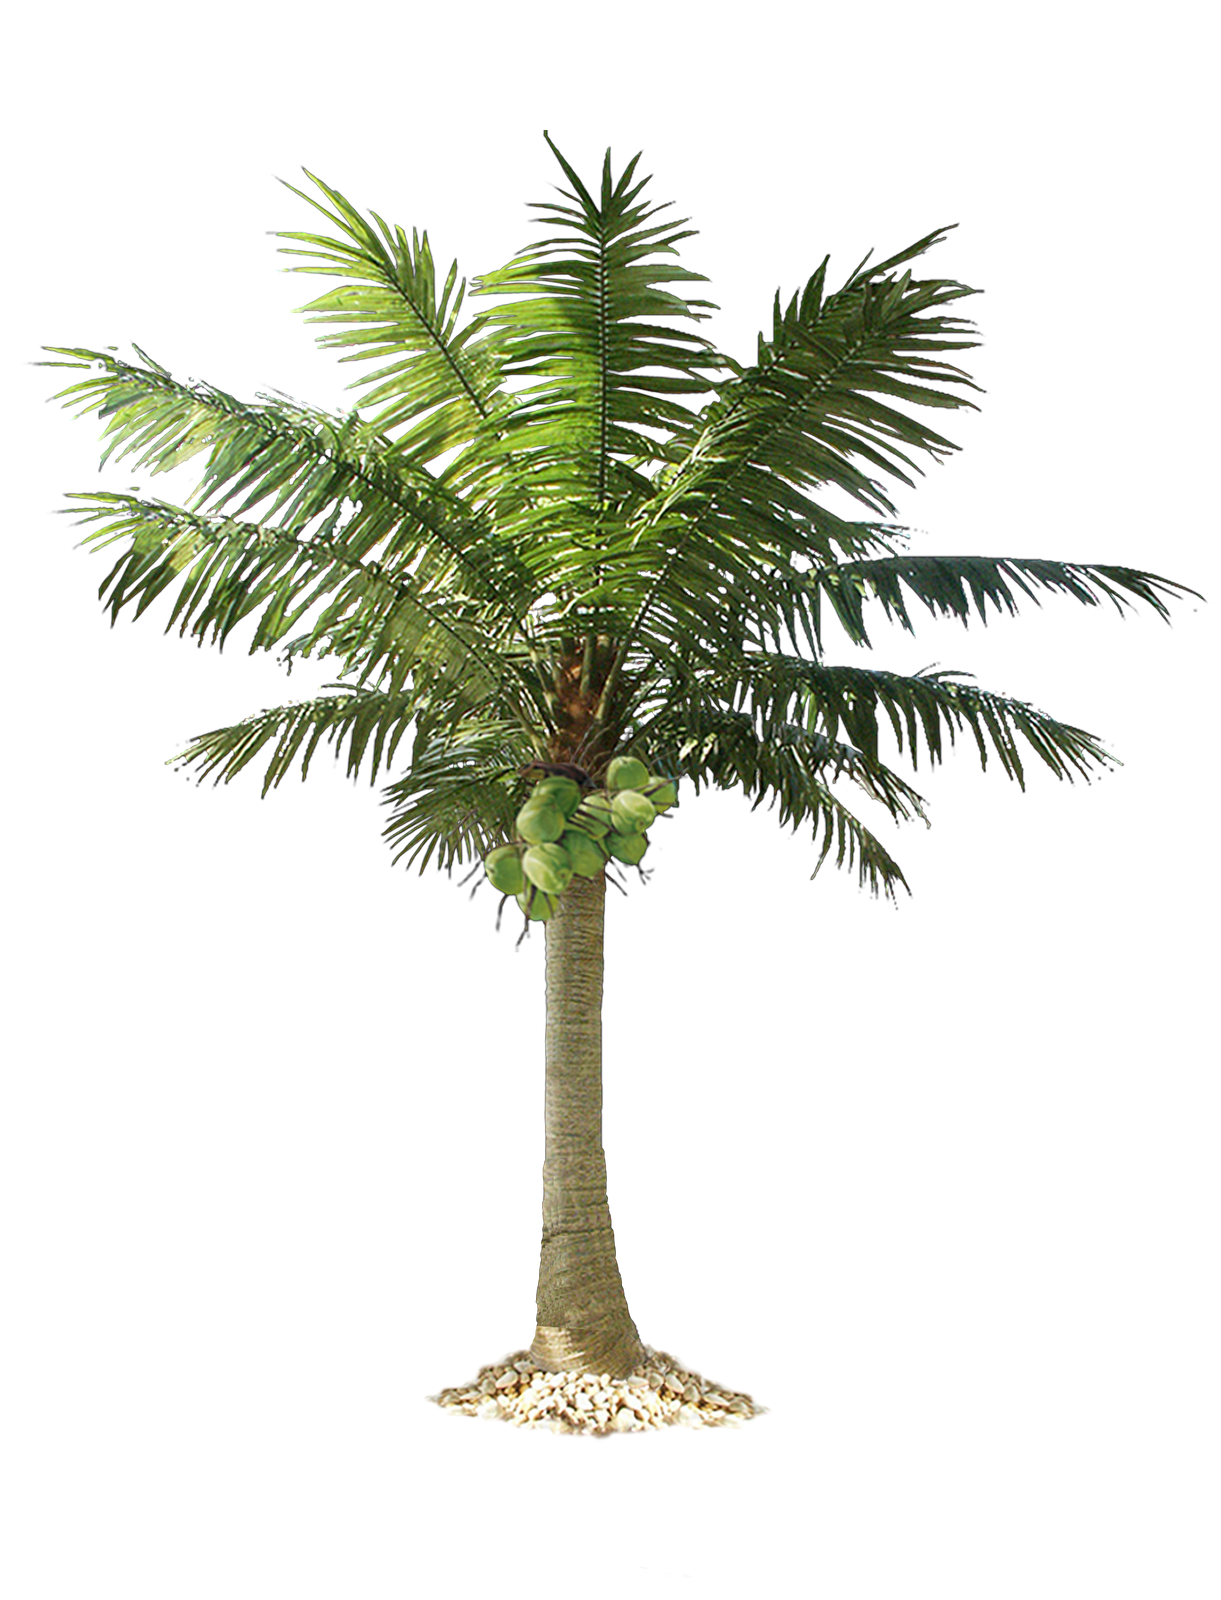 Palm tree photoshop png. Free download images icons